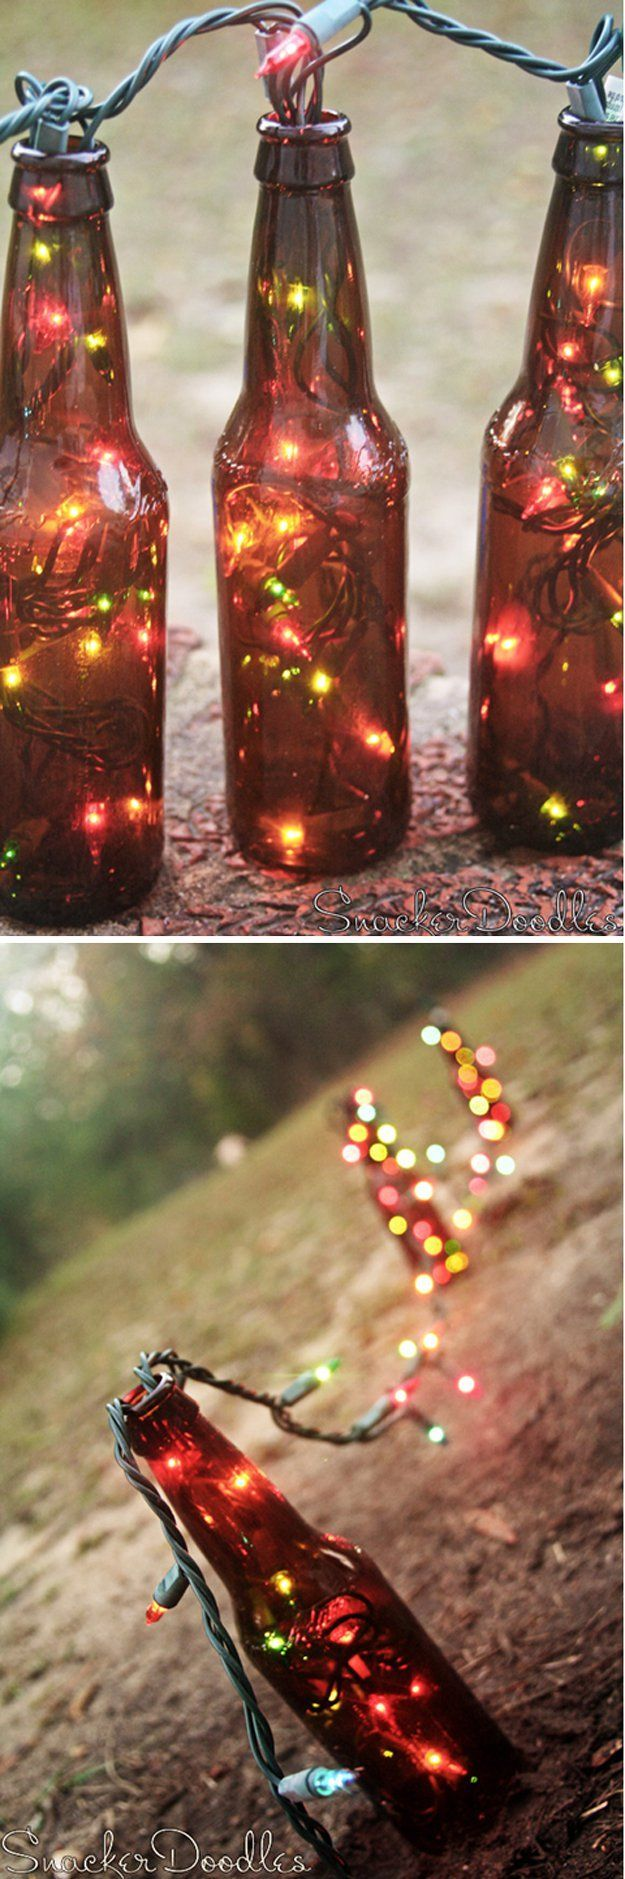 Repurpose your empties and turn them into festive Beer Bottles Lights for parties. Get more creative uses for beer bottles from @DIY Ready | Projects + Crafts.